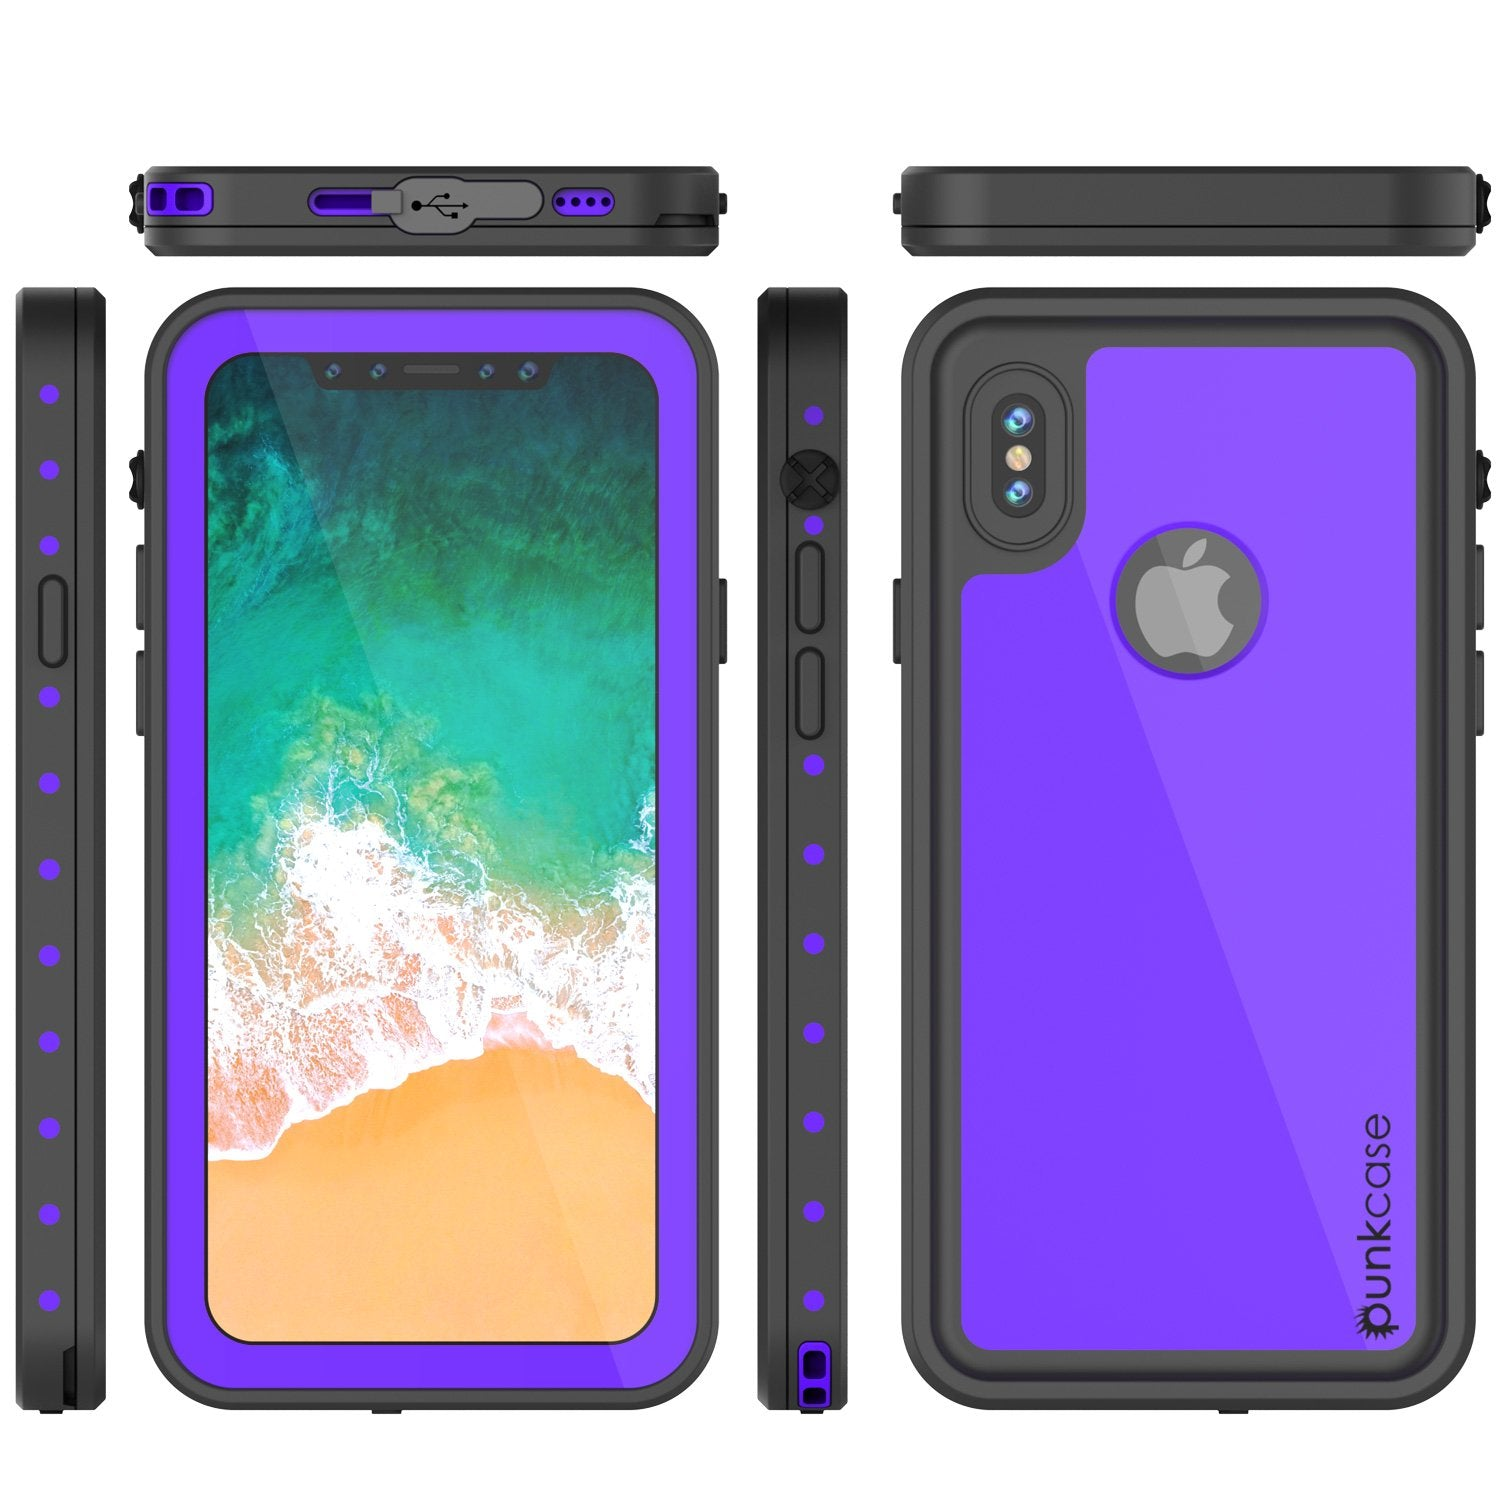 iPhone X Plus Waterproof Case, Punkcase StudStar Series Cover, Purple